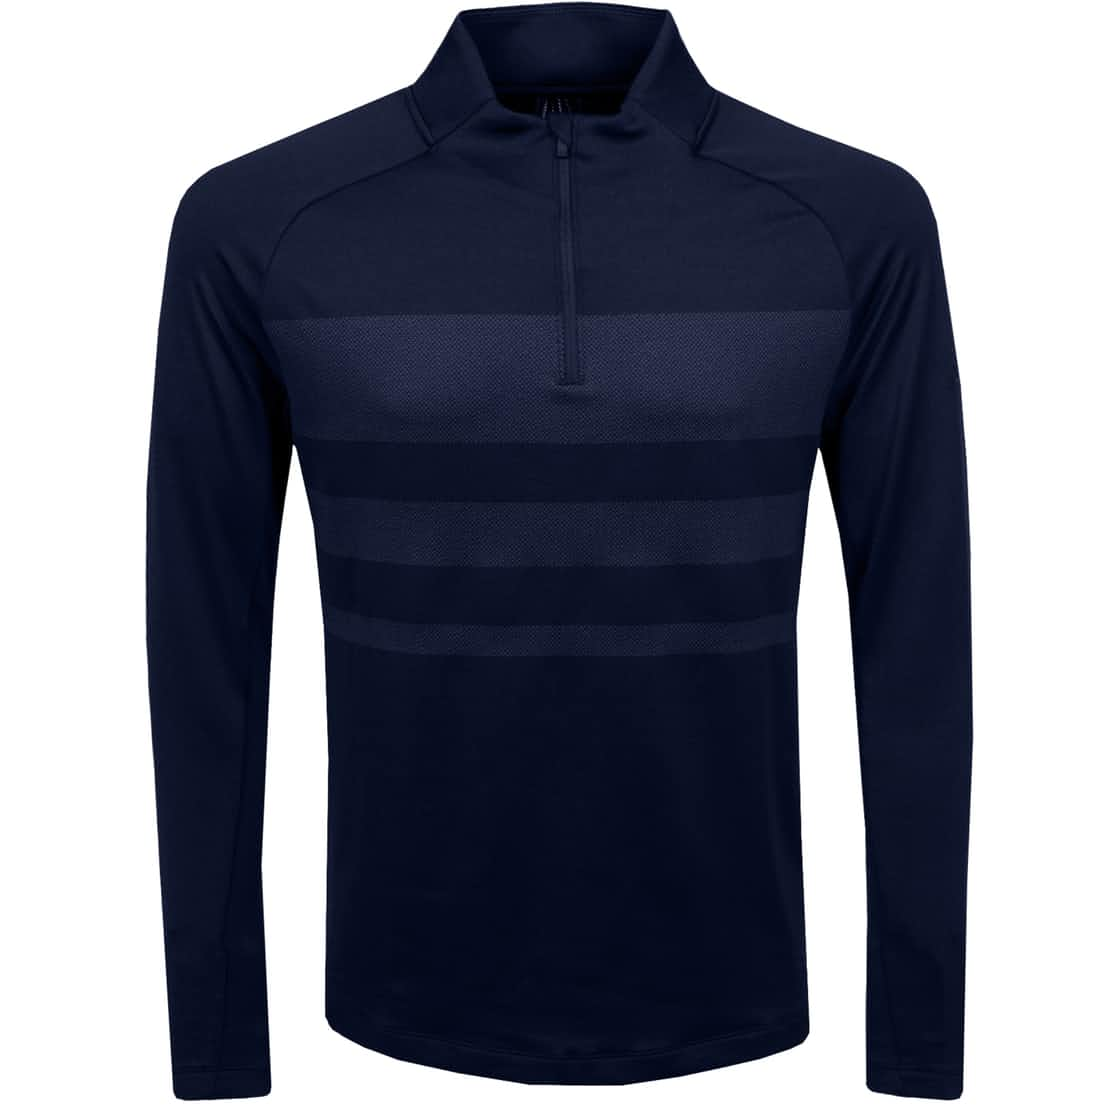 Dry Half Zip Statement Top Obsidian/Diffused Blue - SS20